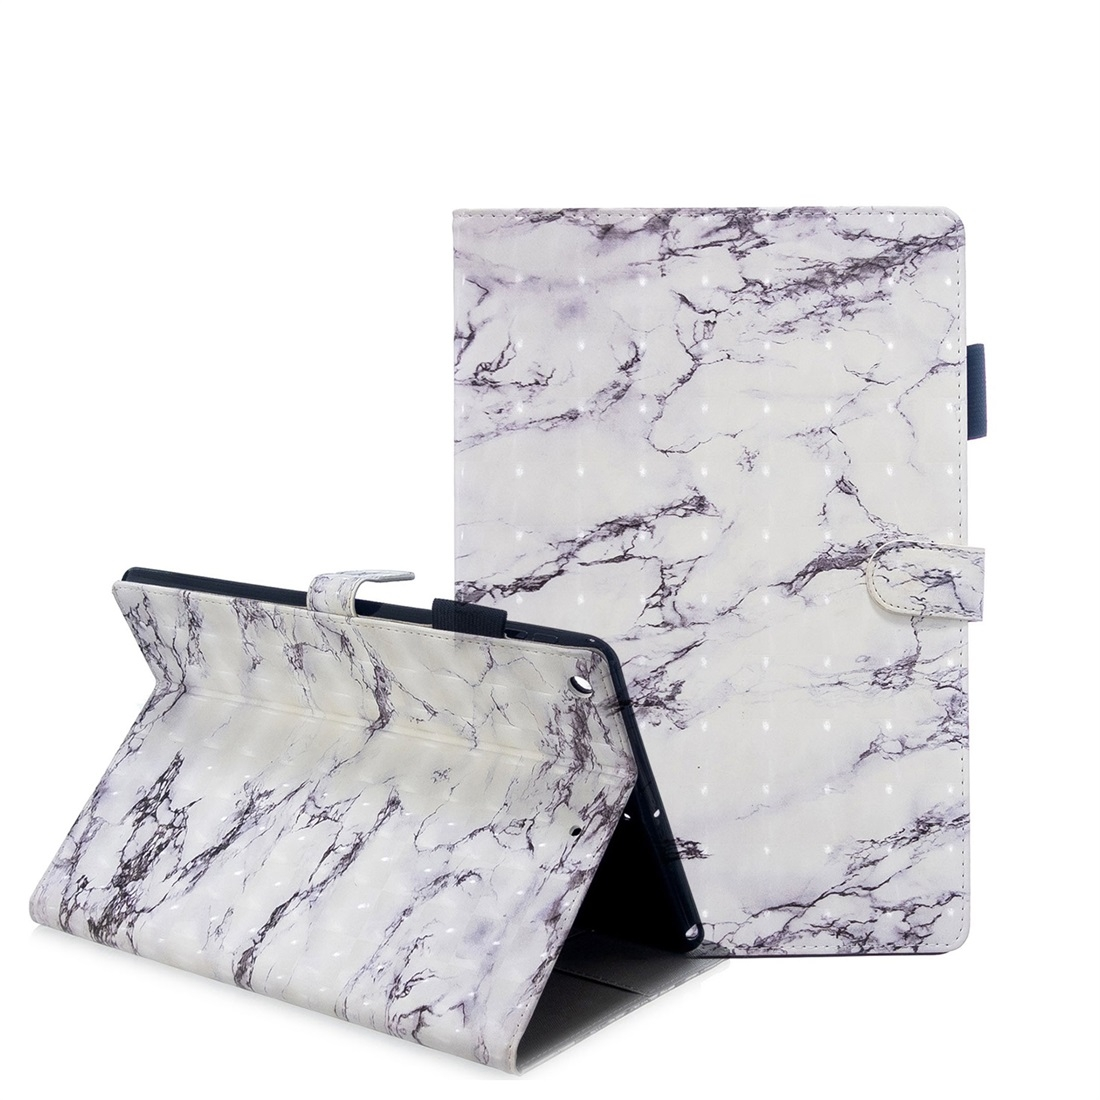 iPad 7th Generation Case (10.2 Inch) 3D Embossing Leather Case & Slim Profile (White Marble)